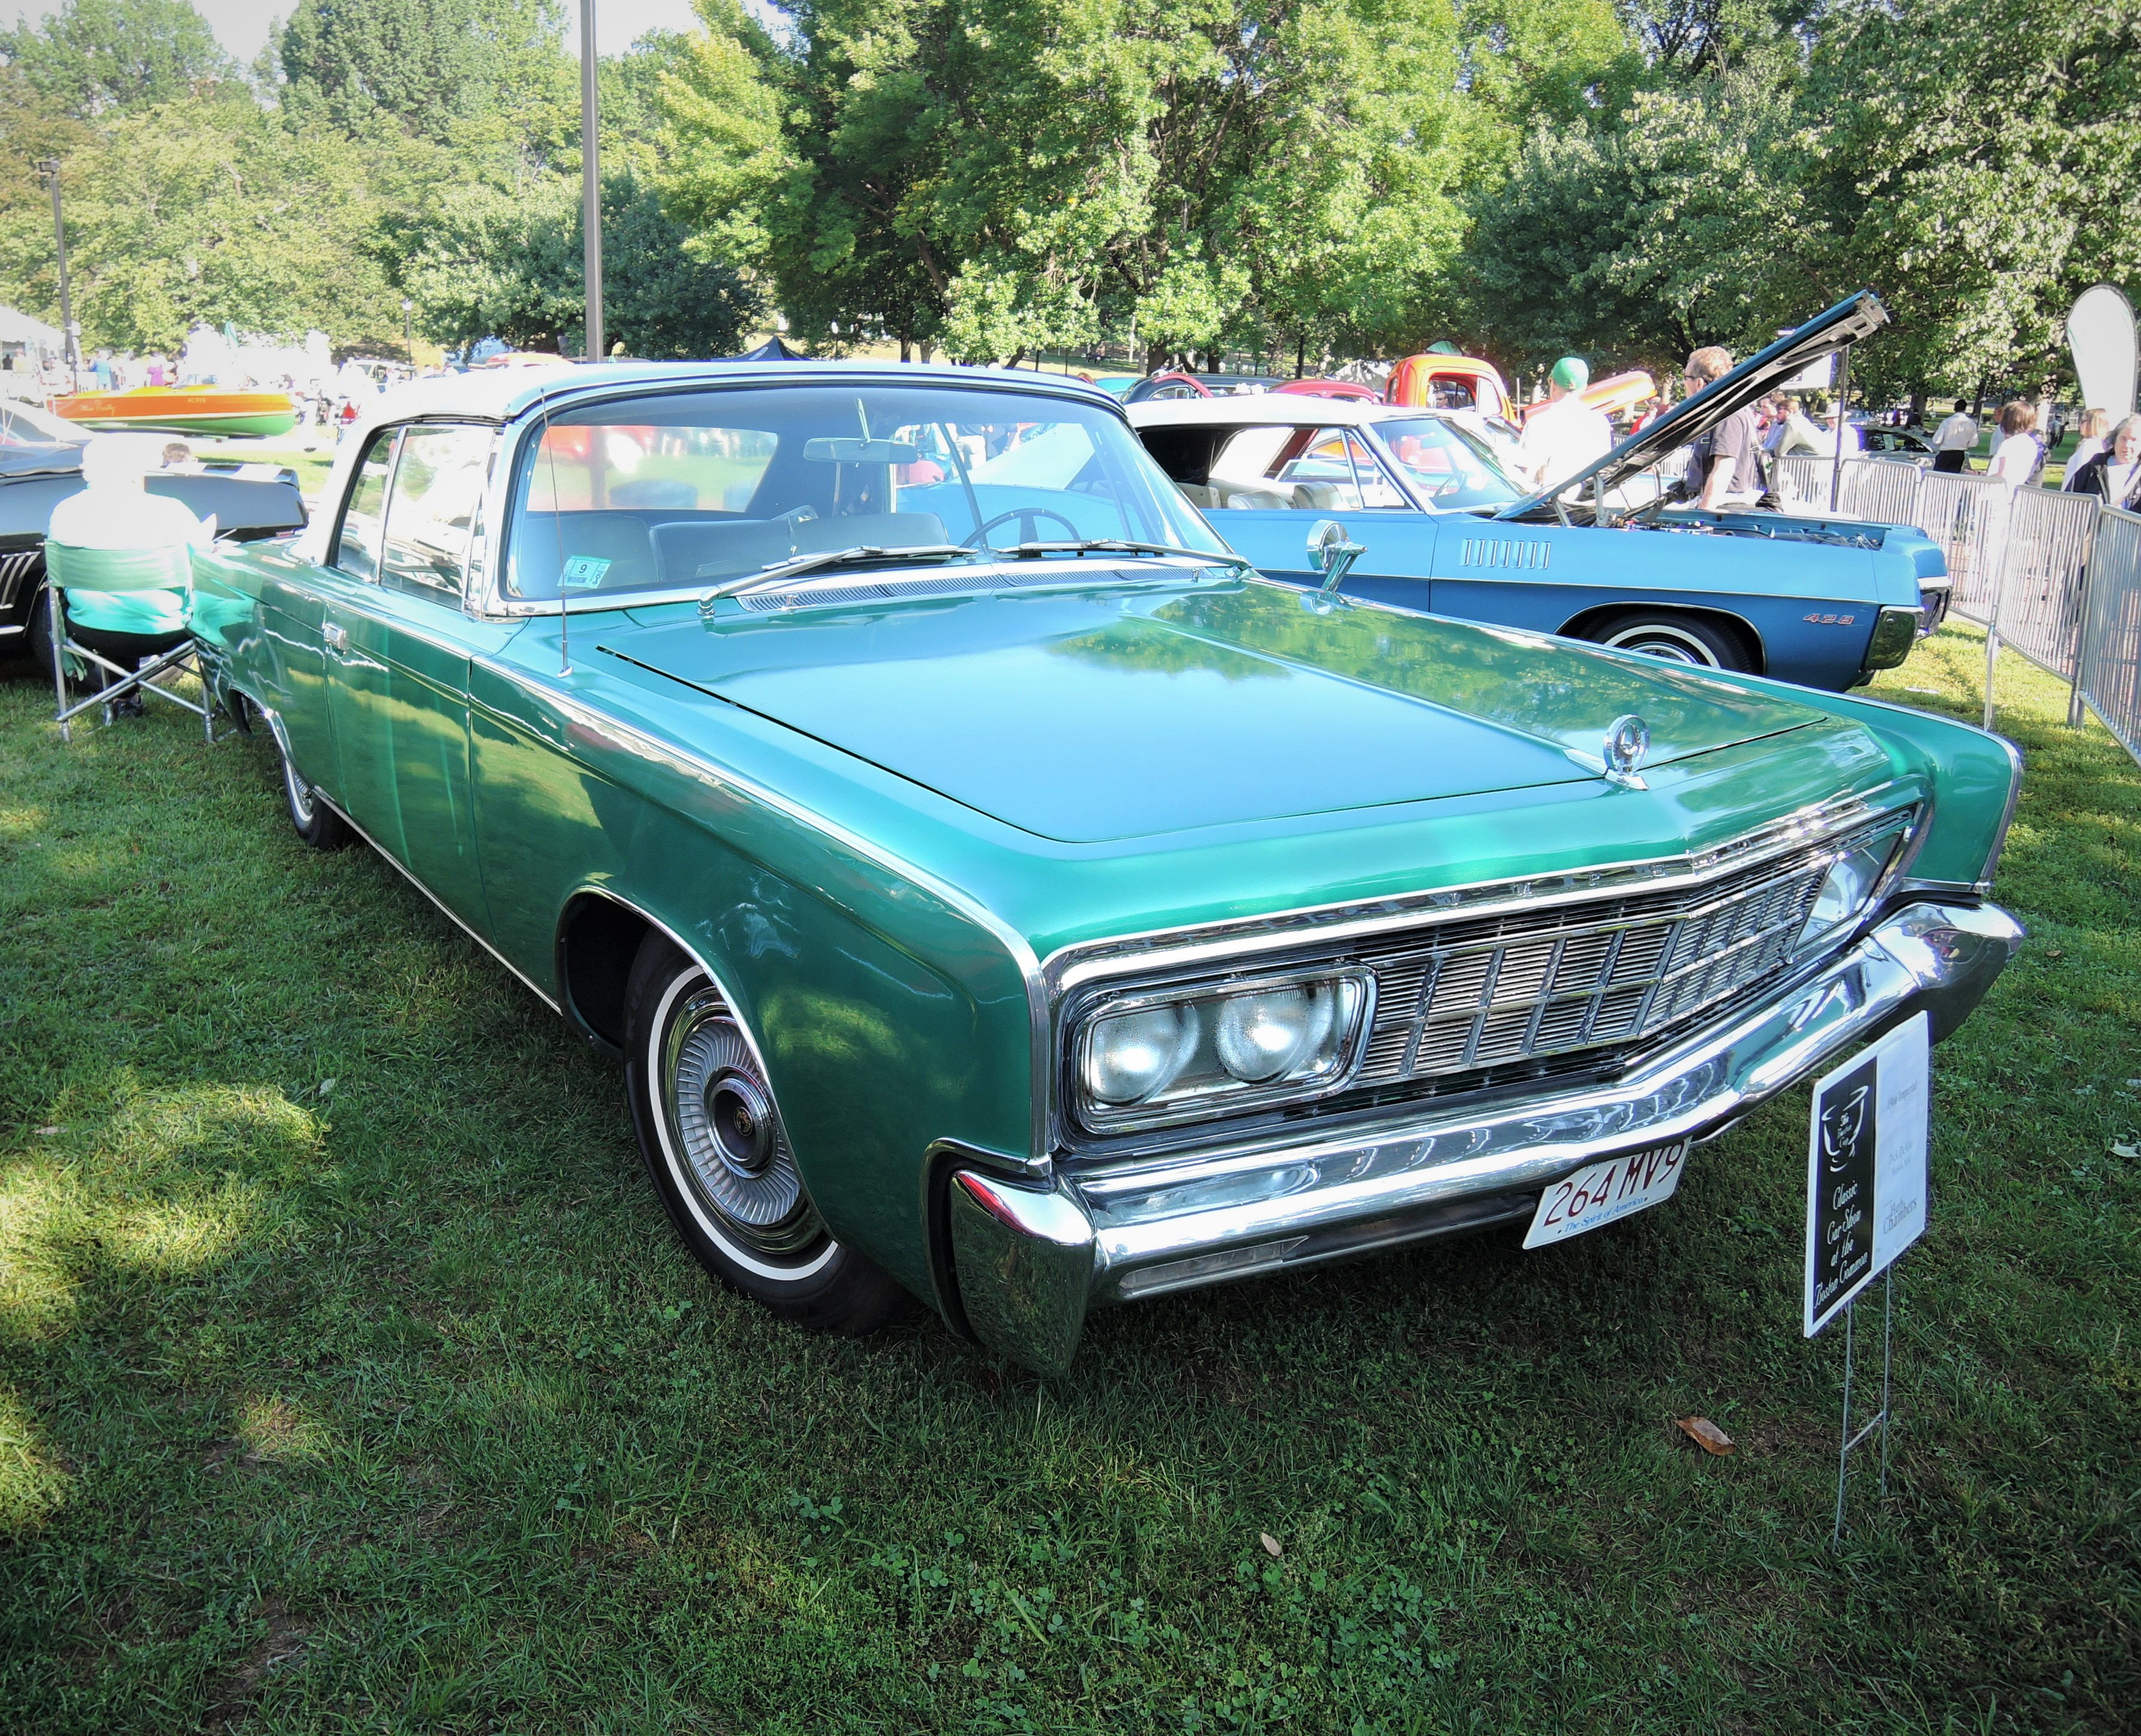 green 1966 Imperial - The Boston Cup 2017